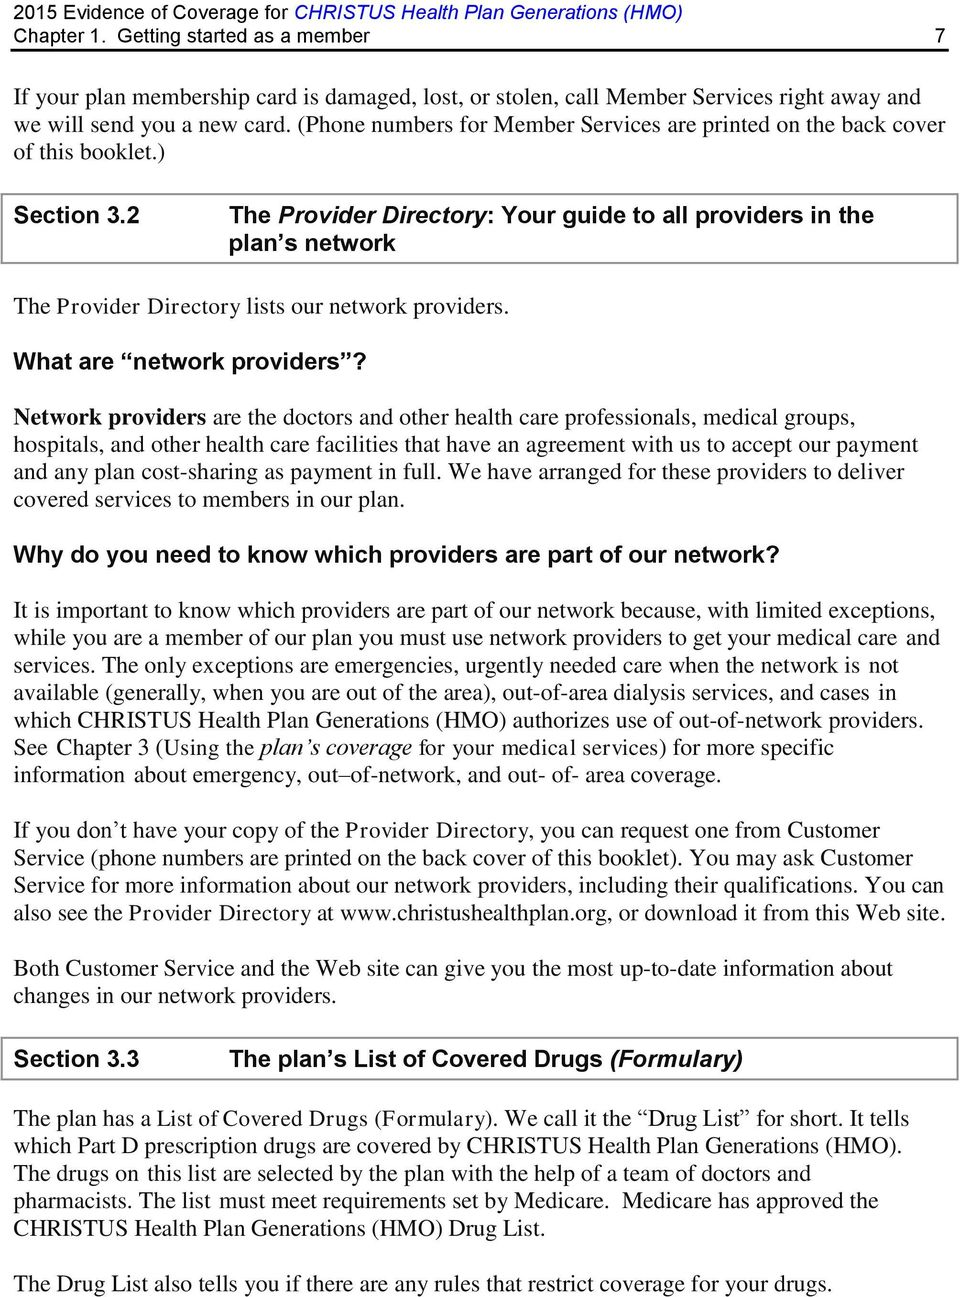 2 The Provider Directory: Your guide to all providers in the plan s network The Provider Directory lists our network providers. What are network providers?